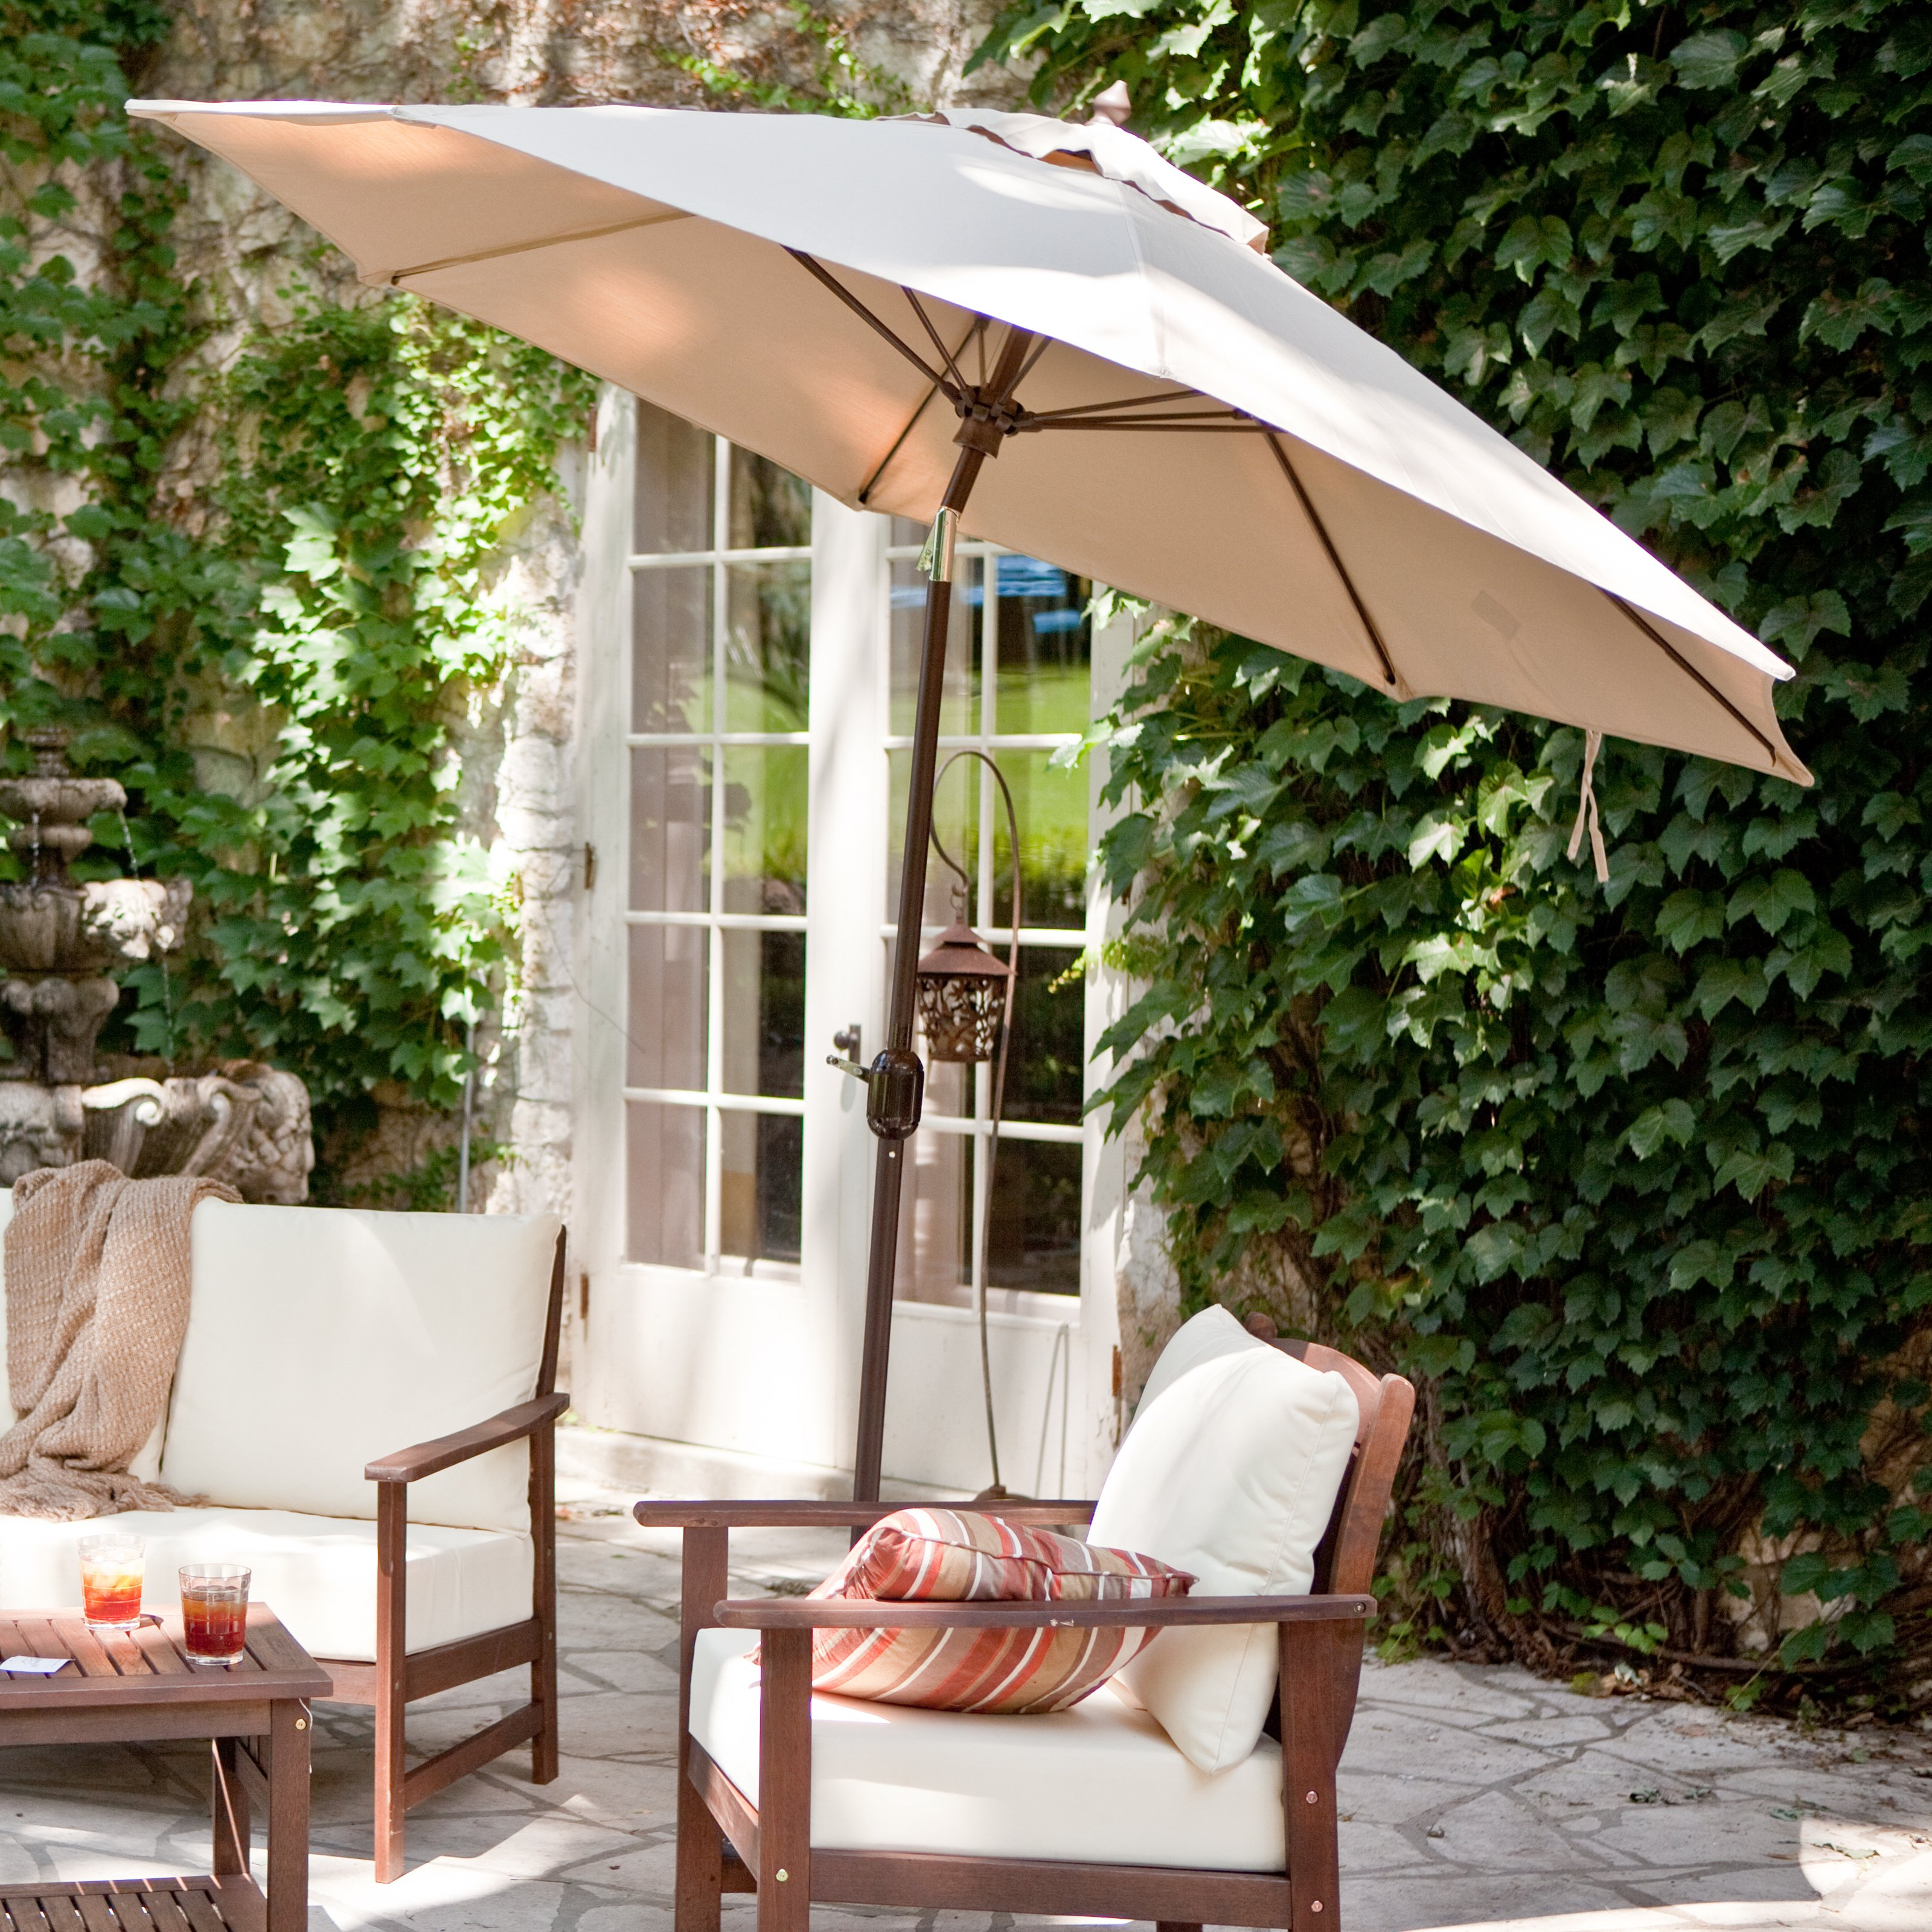 Bradford Patiosquare Market Umbrellas With Regard To Favorite Small Patio Umbrella 2019 Diy Patio Umbrella Stand Side Table We (Gallery 7 of 20)